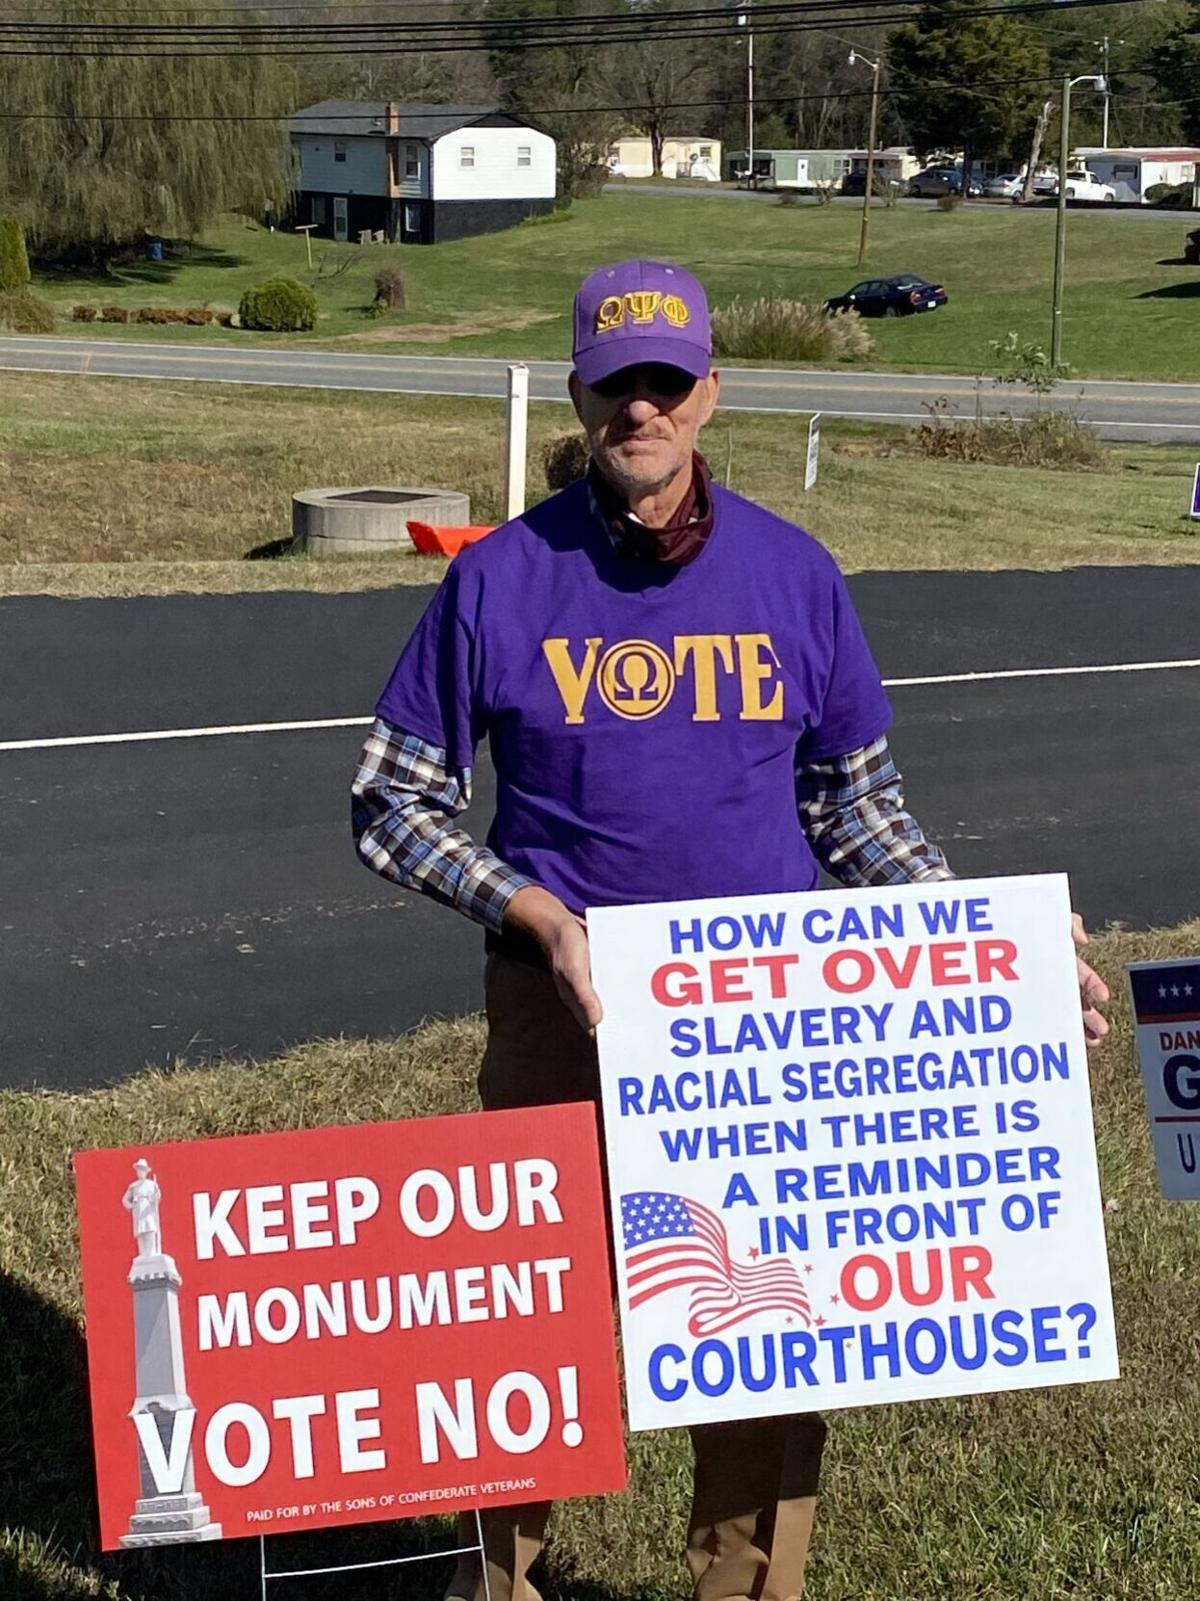 Franklin County activists vow to press on despite statue referendum results